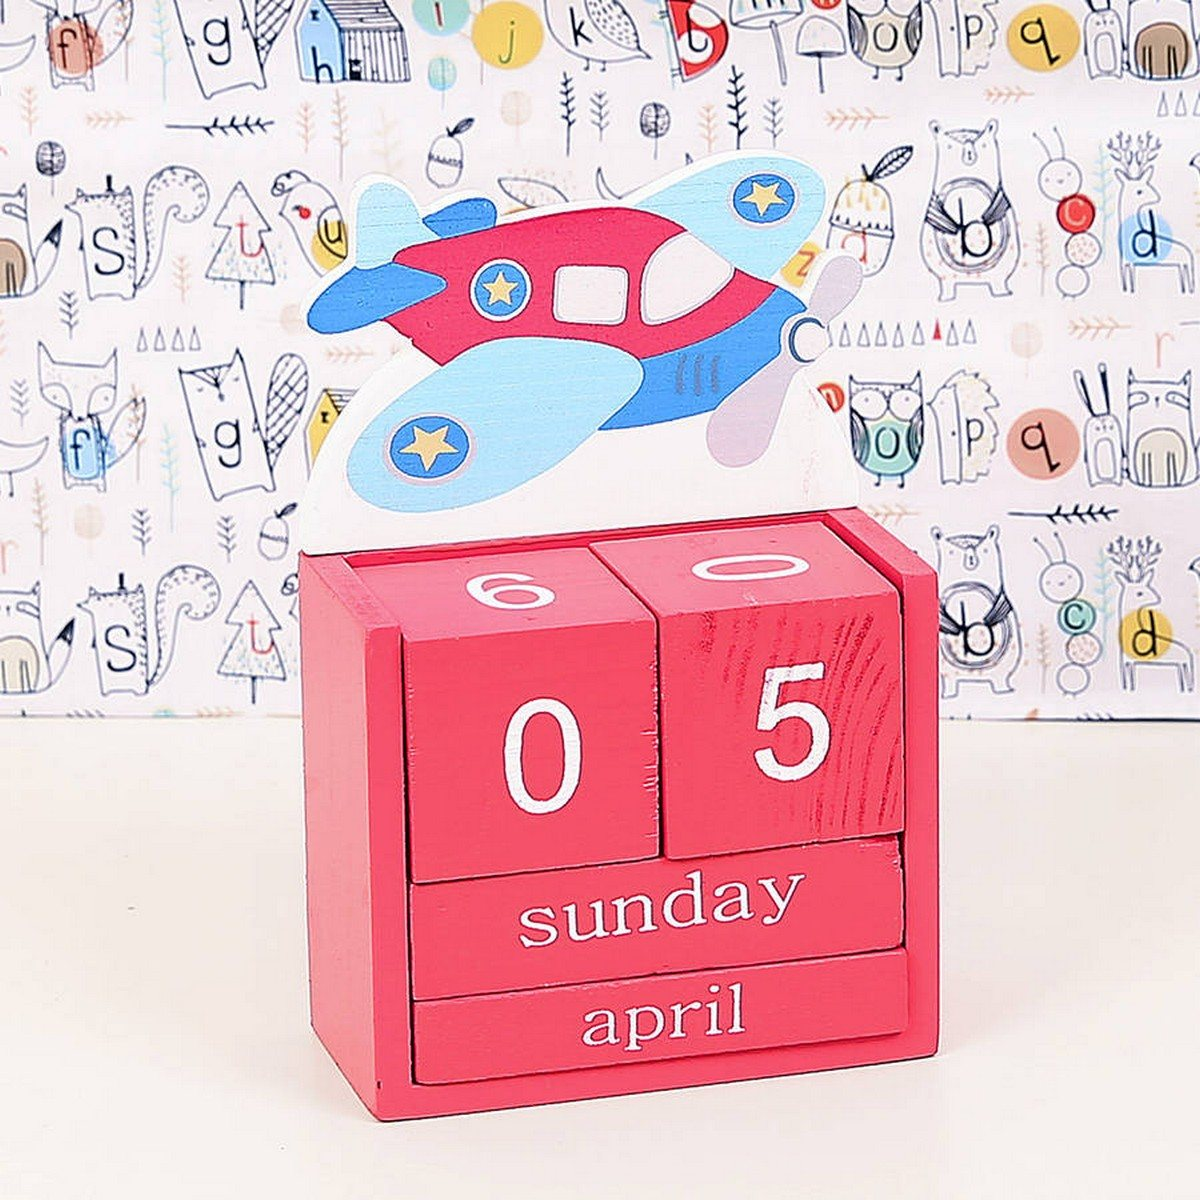 It's that time of year again, so get ready to organize your life with our top picks for pretty and functional calendars and planners.